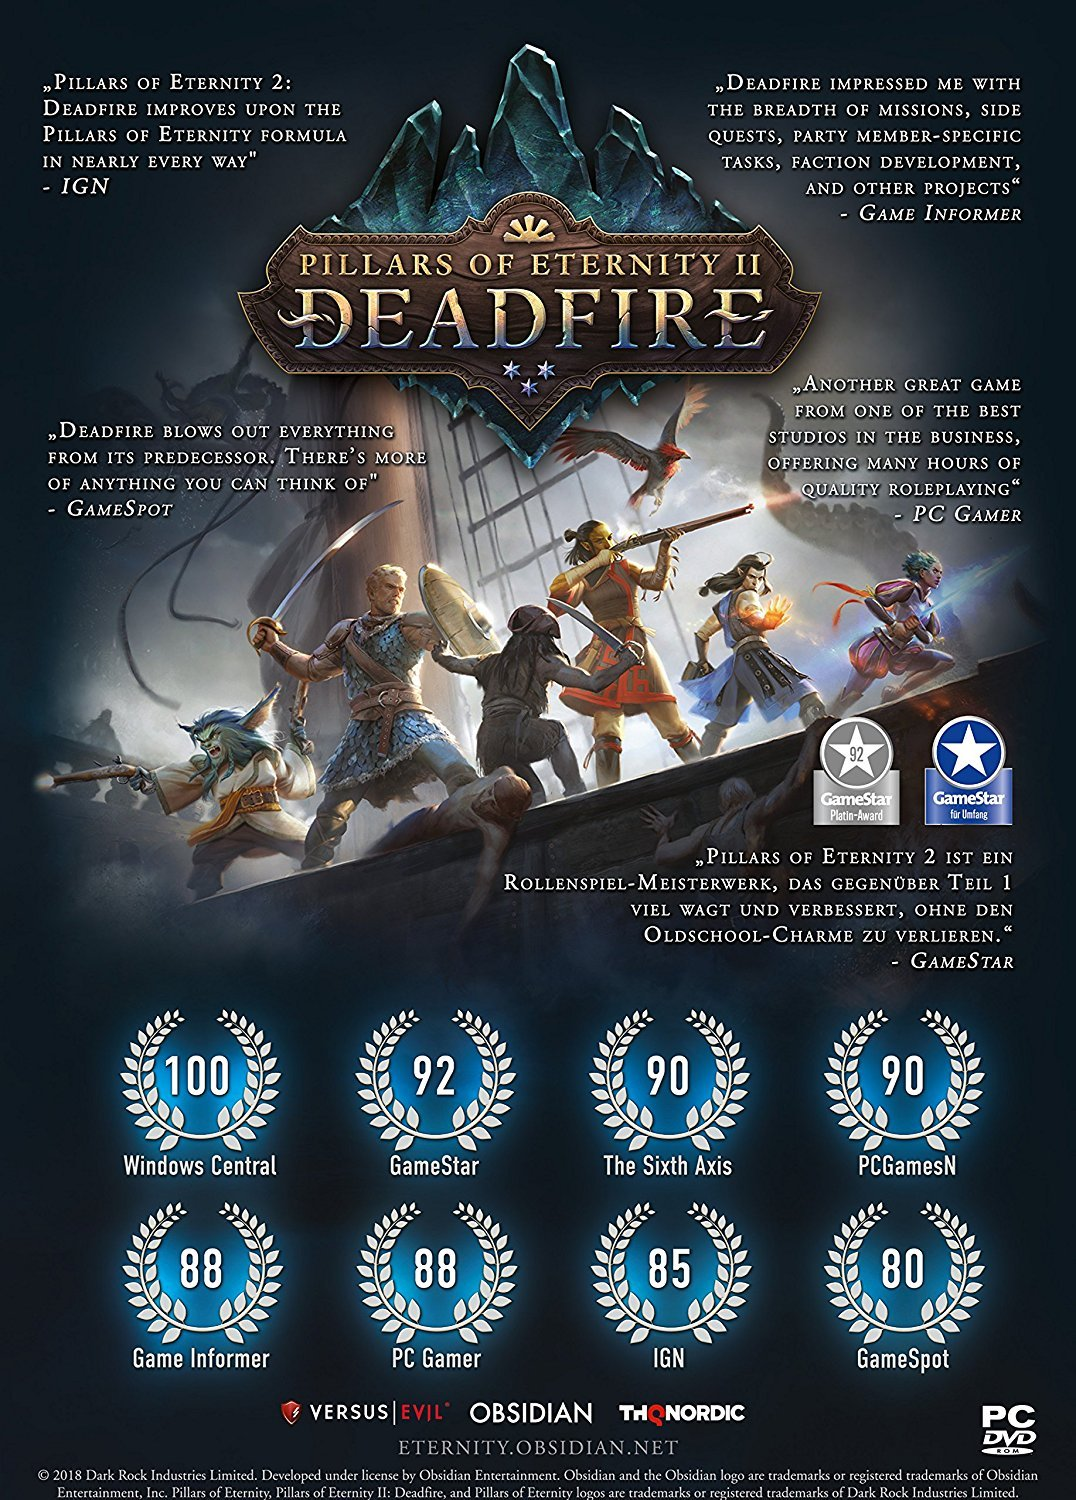 [2019-03-31] Pillars of Eternity 2 Deadfire switch 81Oak9gjpaL._SL1500_